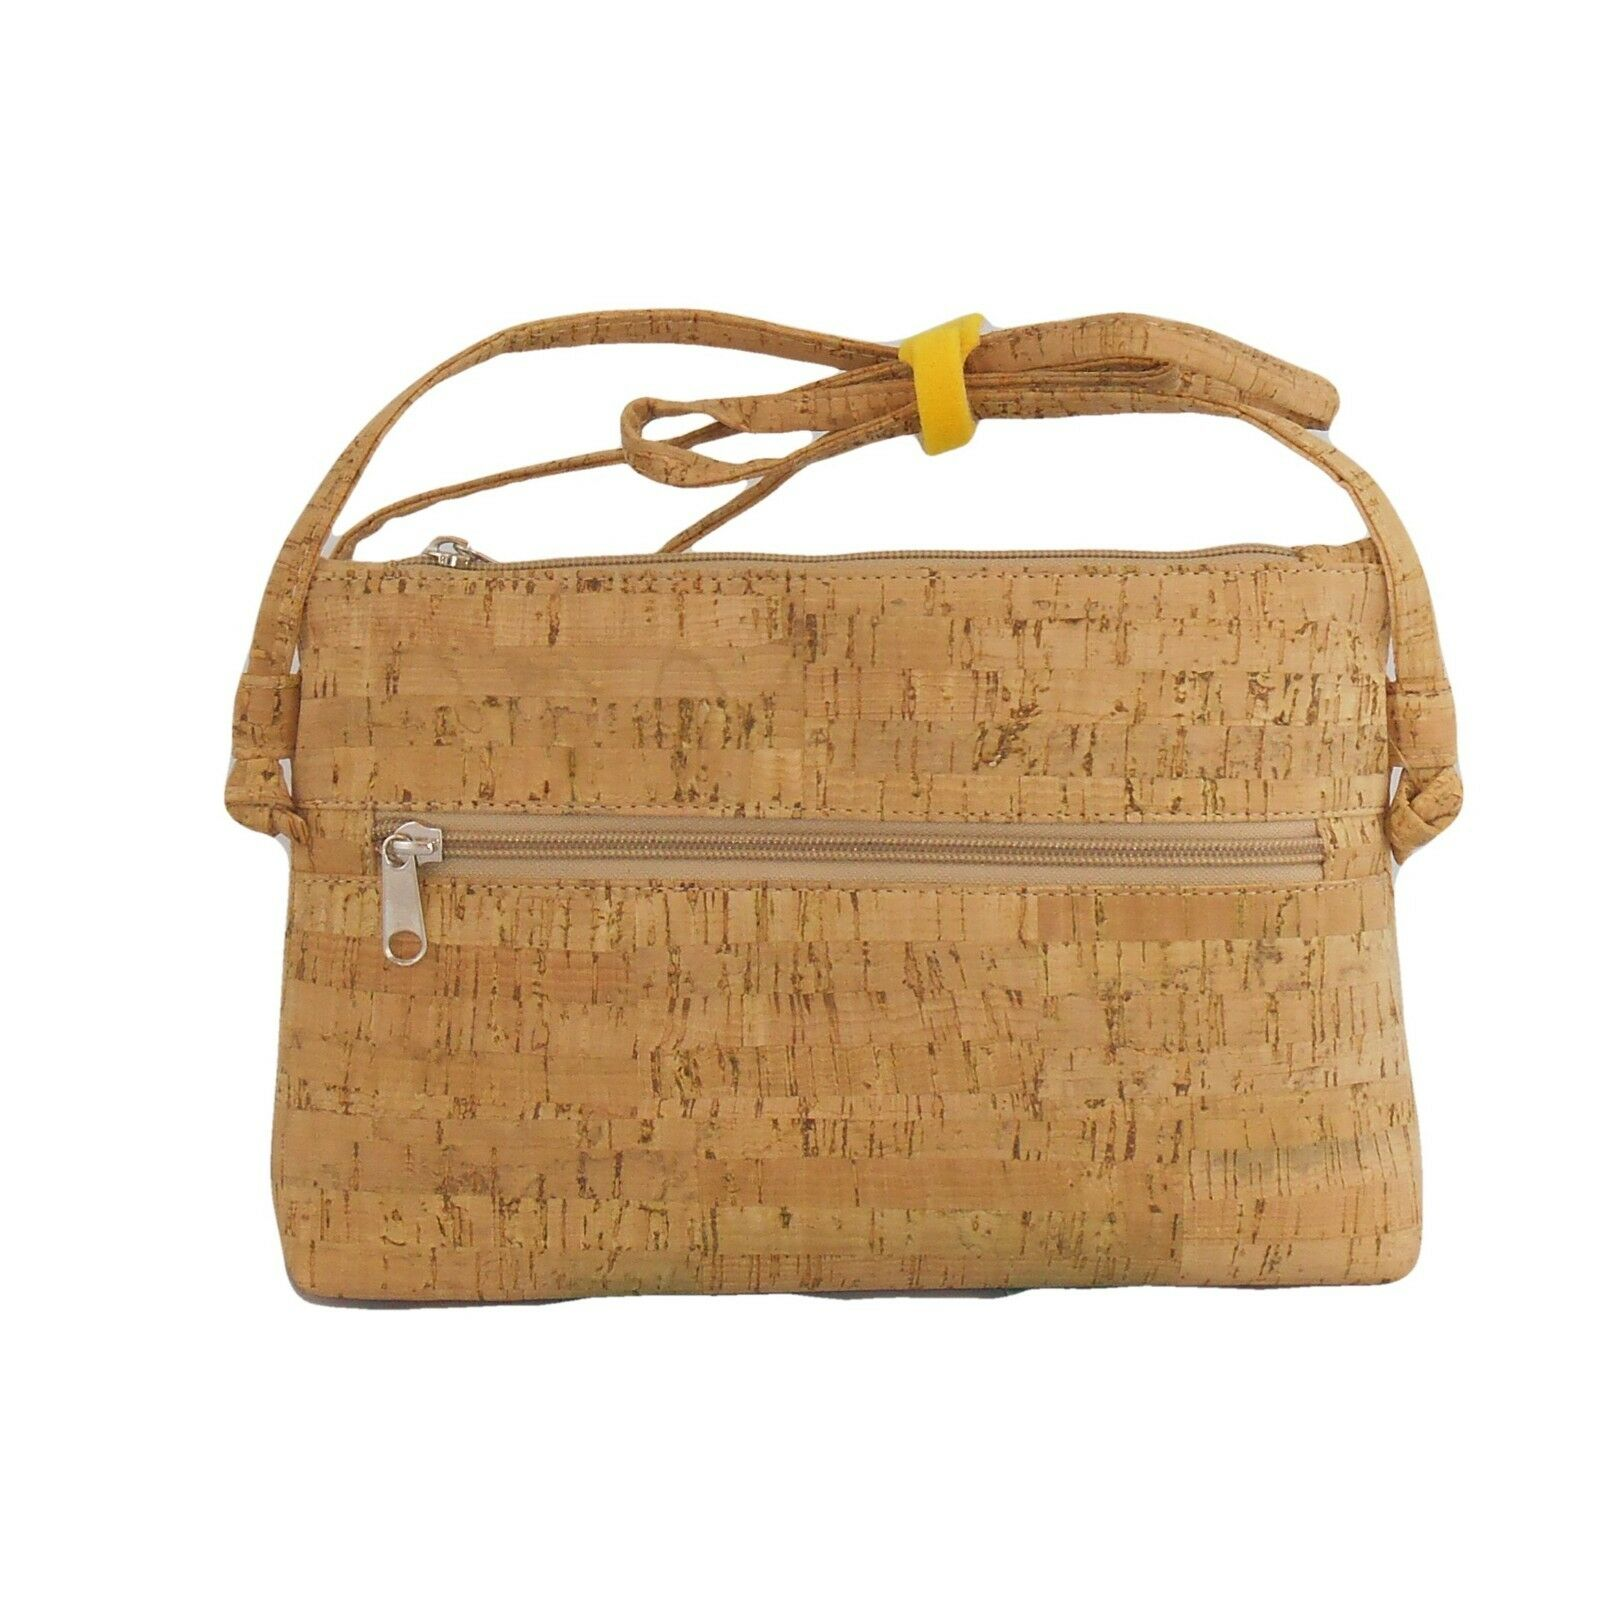 The PINE shoulder bag in wood cork. eco-friendly, handmade. VEGANS